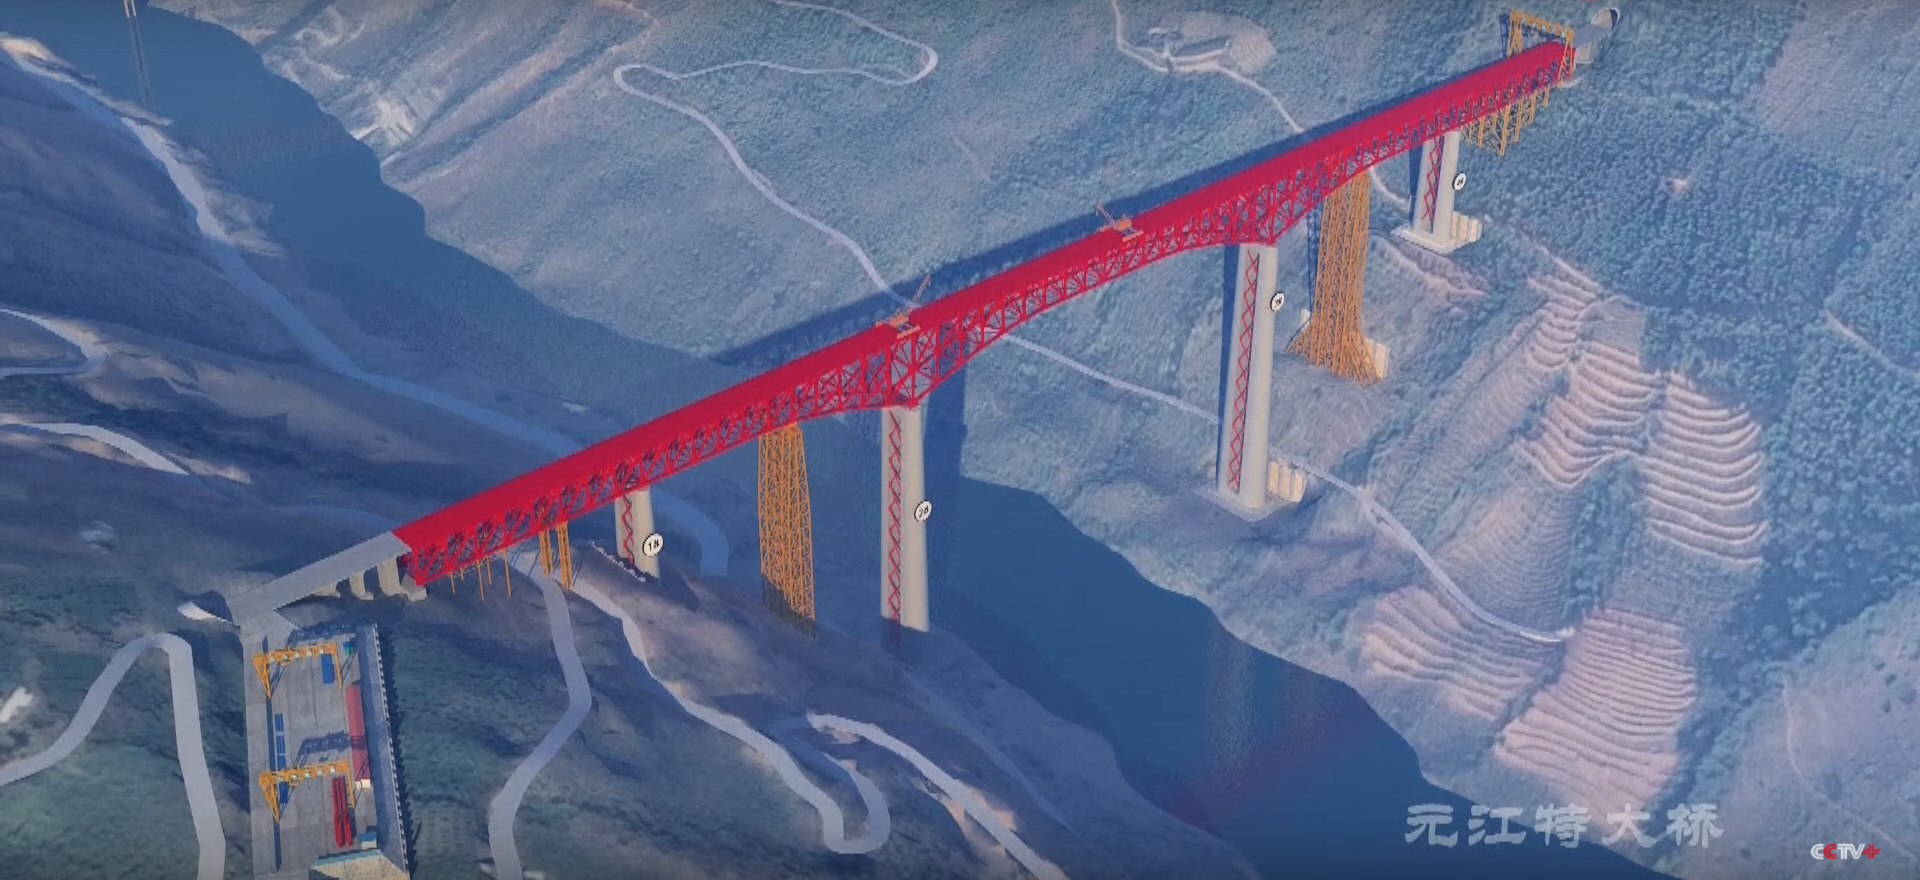 Construction starts on Chinese rail bridge with 154m-tall towers logo